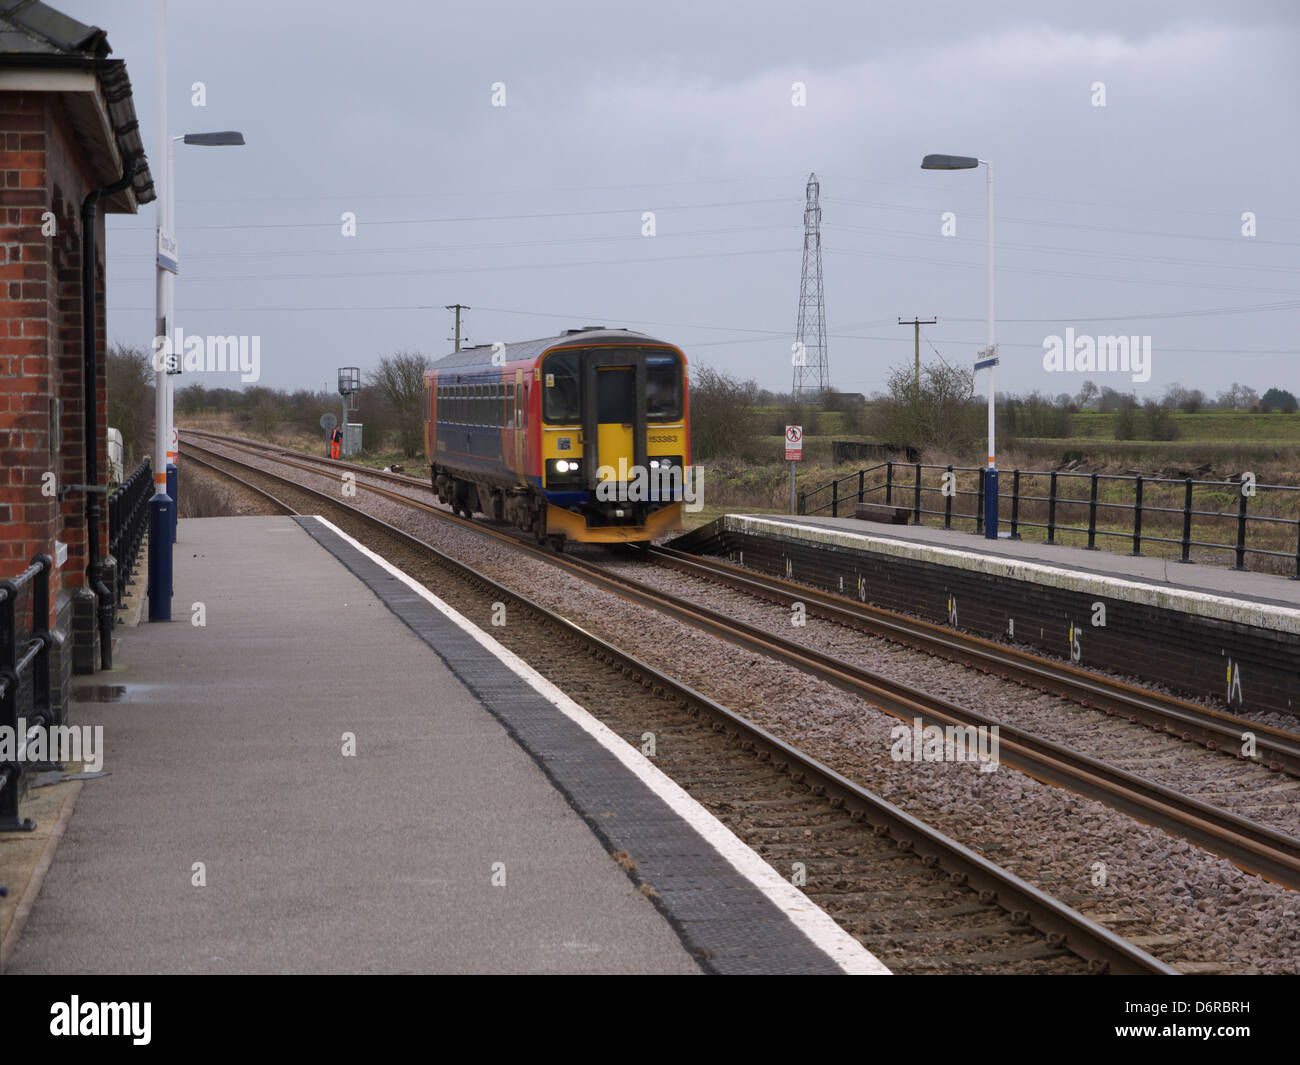 DMU at Skegness railway station January 2011 - Stock Image